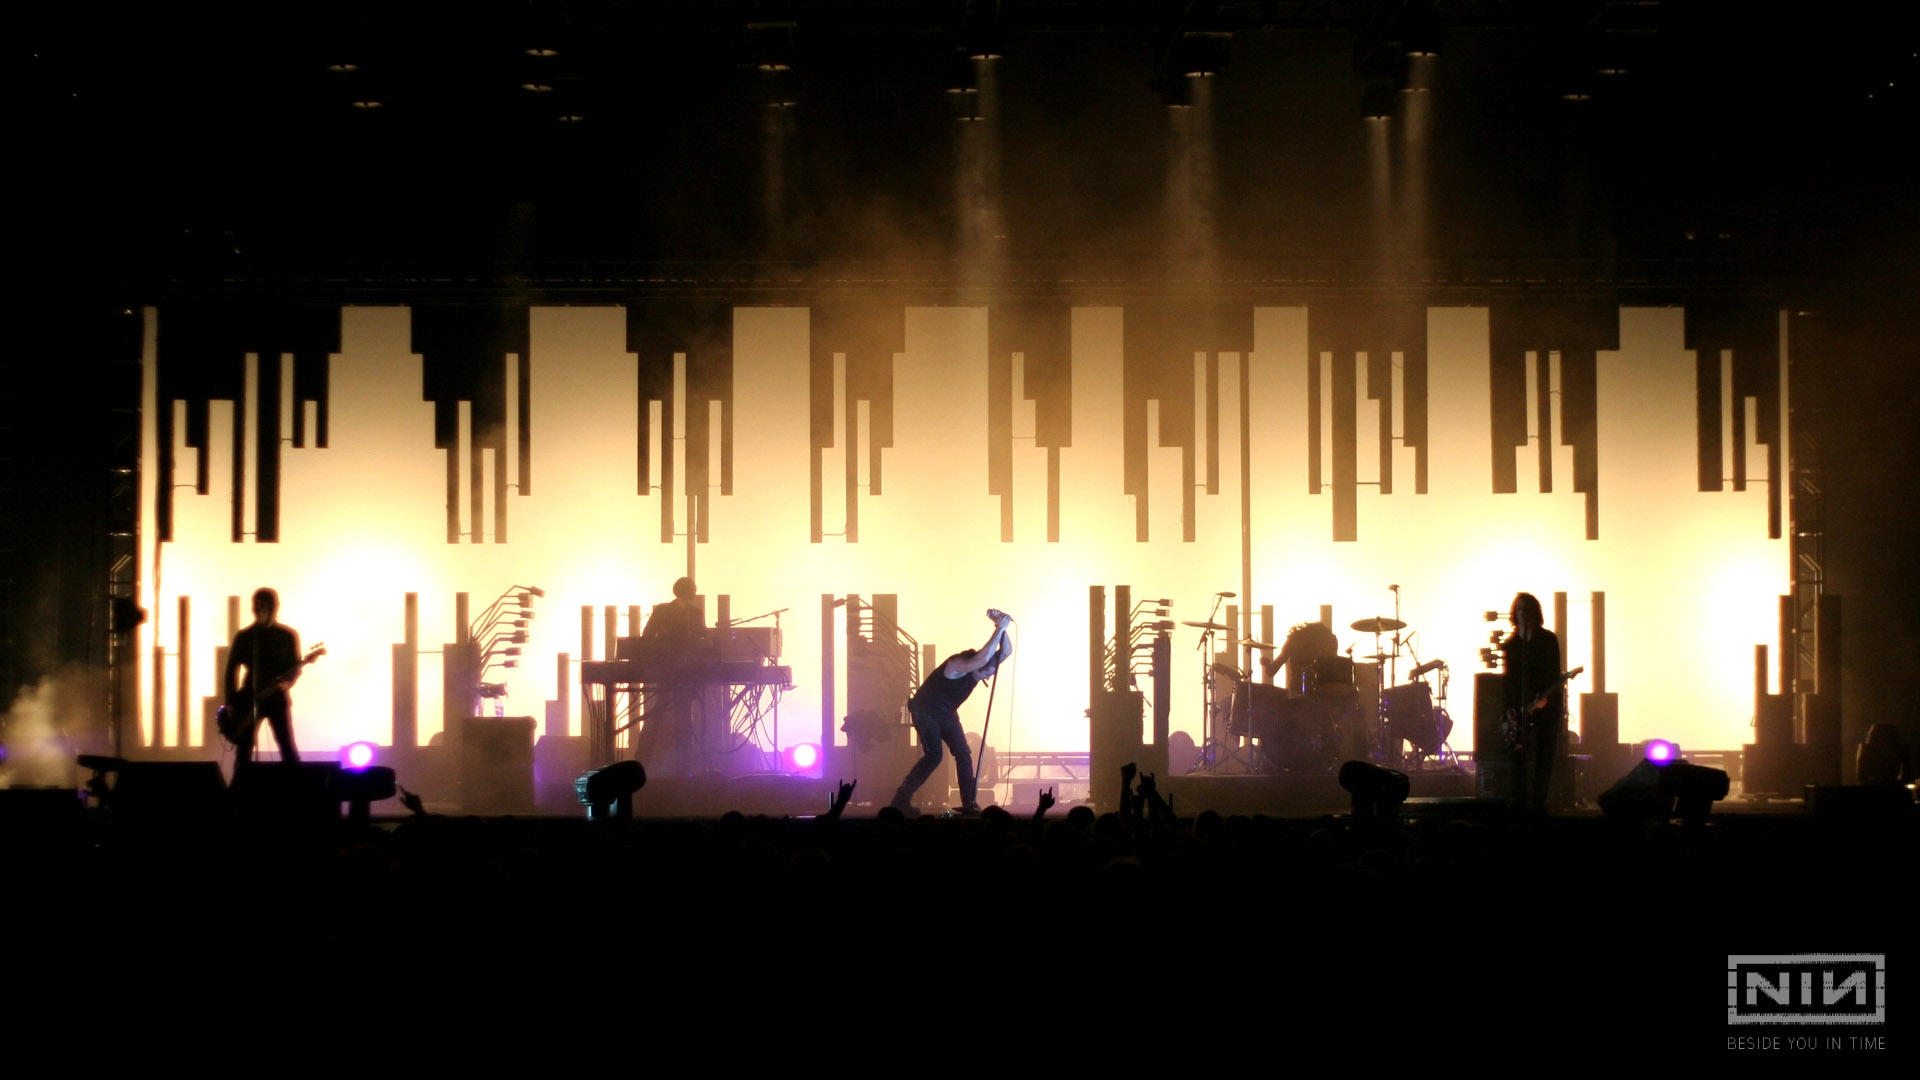 Download Wallpaper 1920x1080 nine inch nails, show, concert, members ...